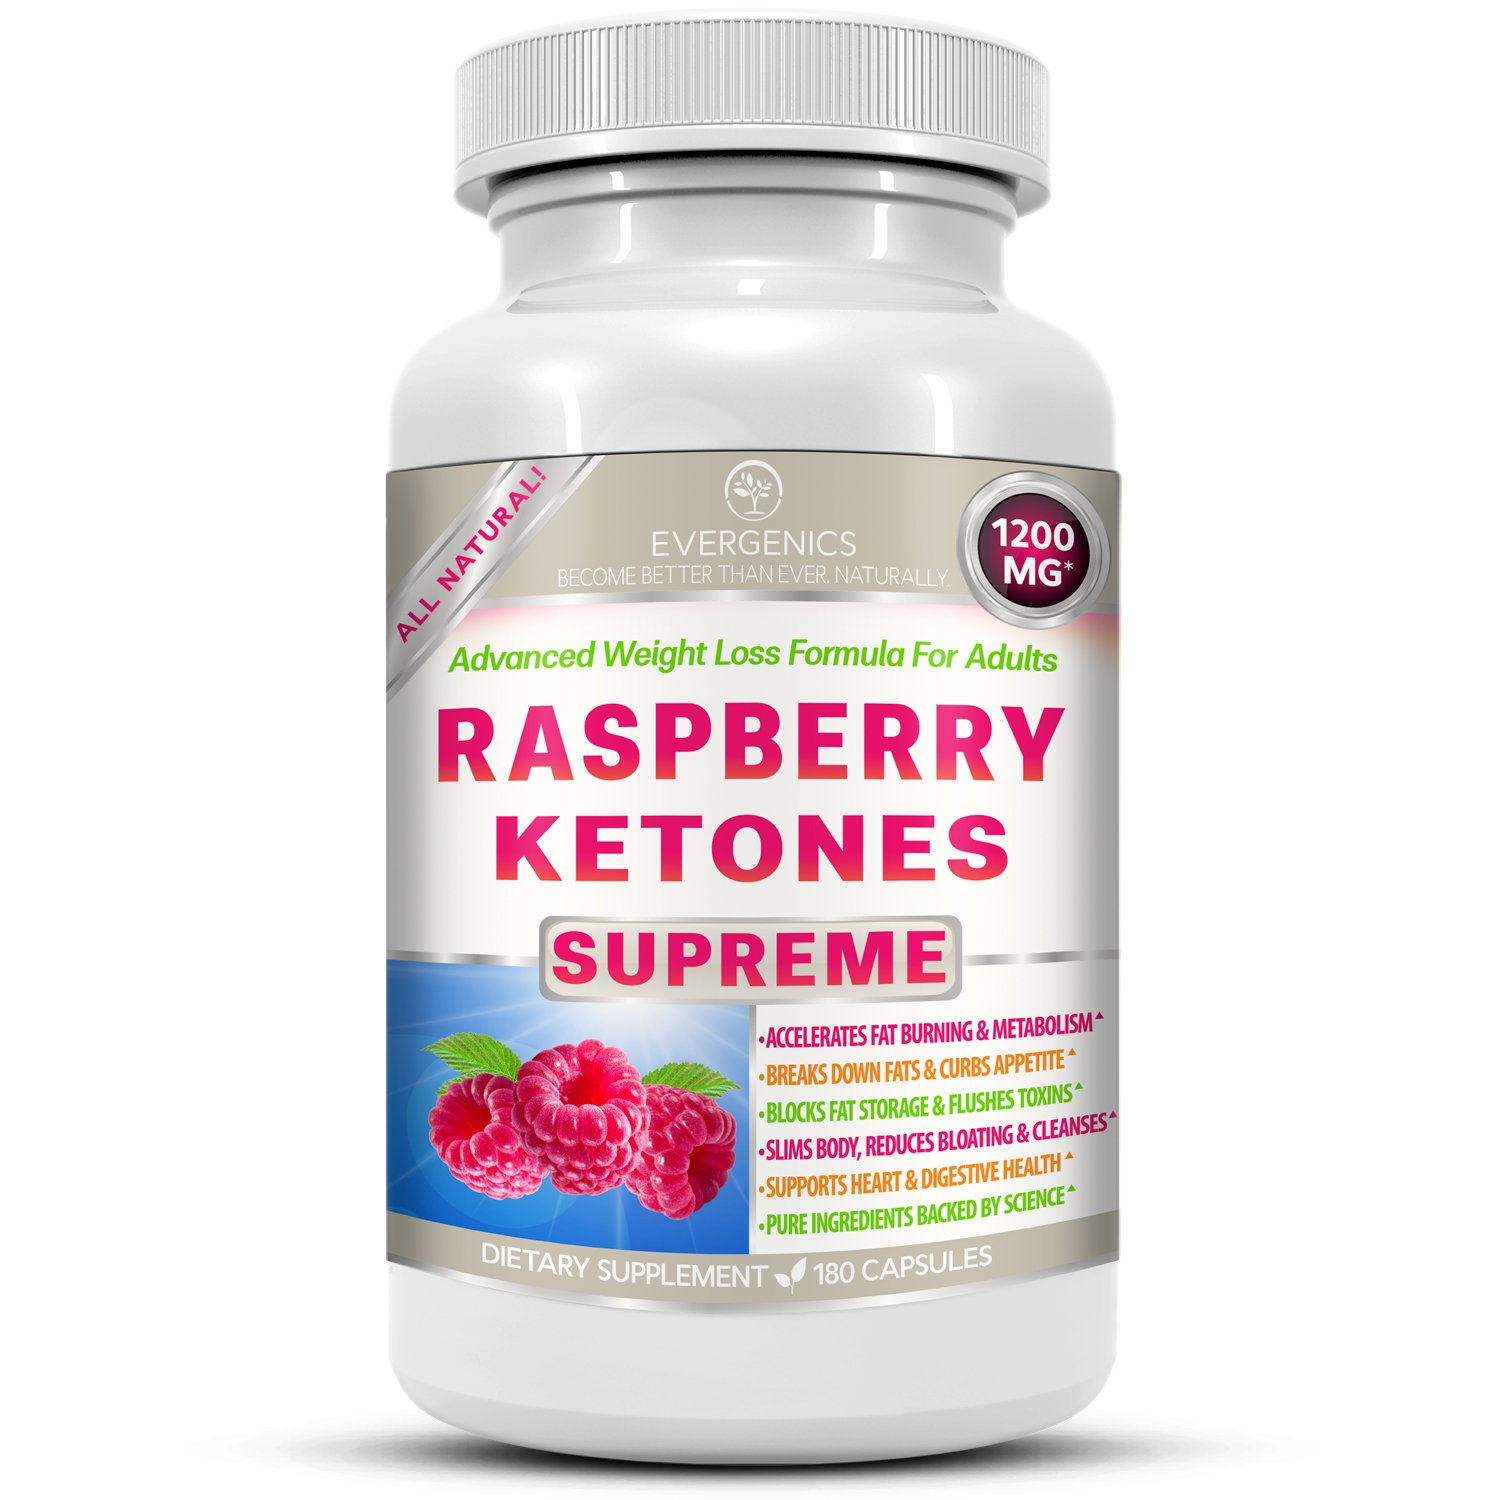 Raspberry Ketones Supreme Weight Loss & Slimming Formula For Adults. 1200mg Per Day. 180 All-Natural Capsules With Premium, Pure & Organic Ingredients. by Evergenics Health and Personal Care